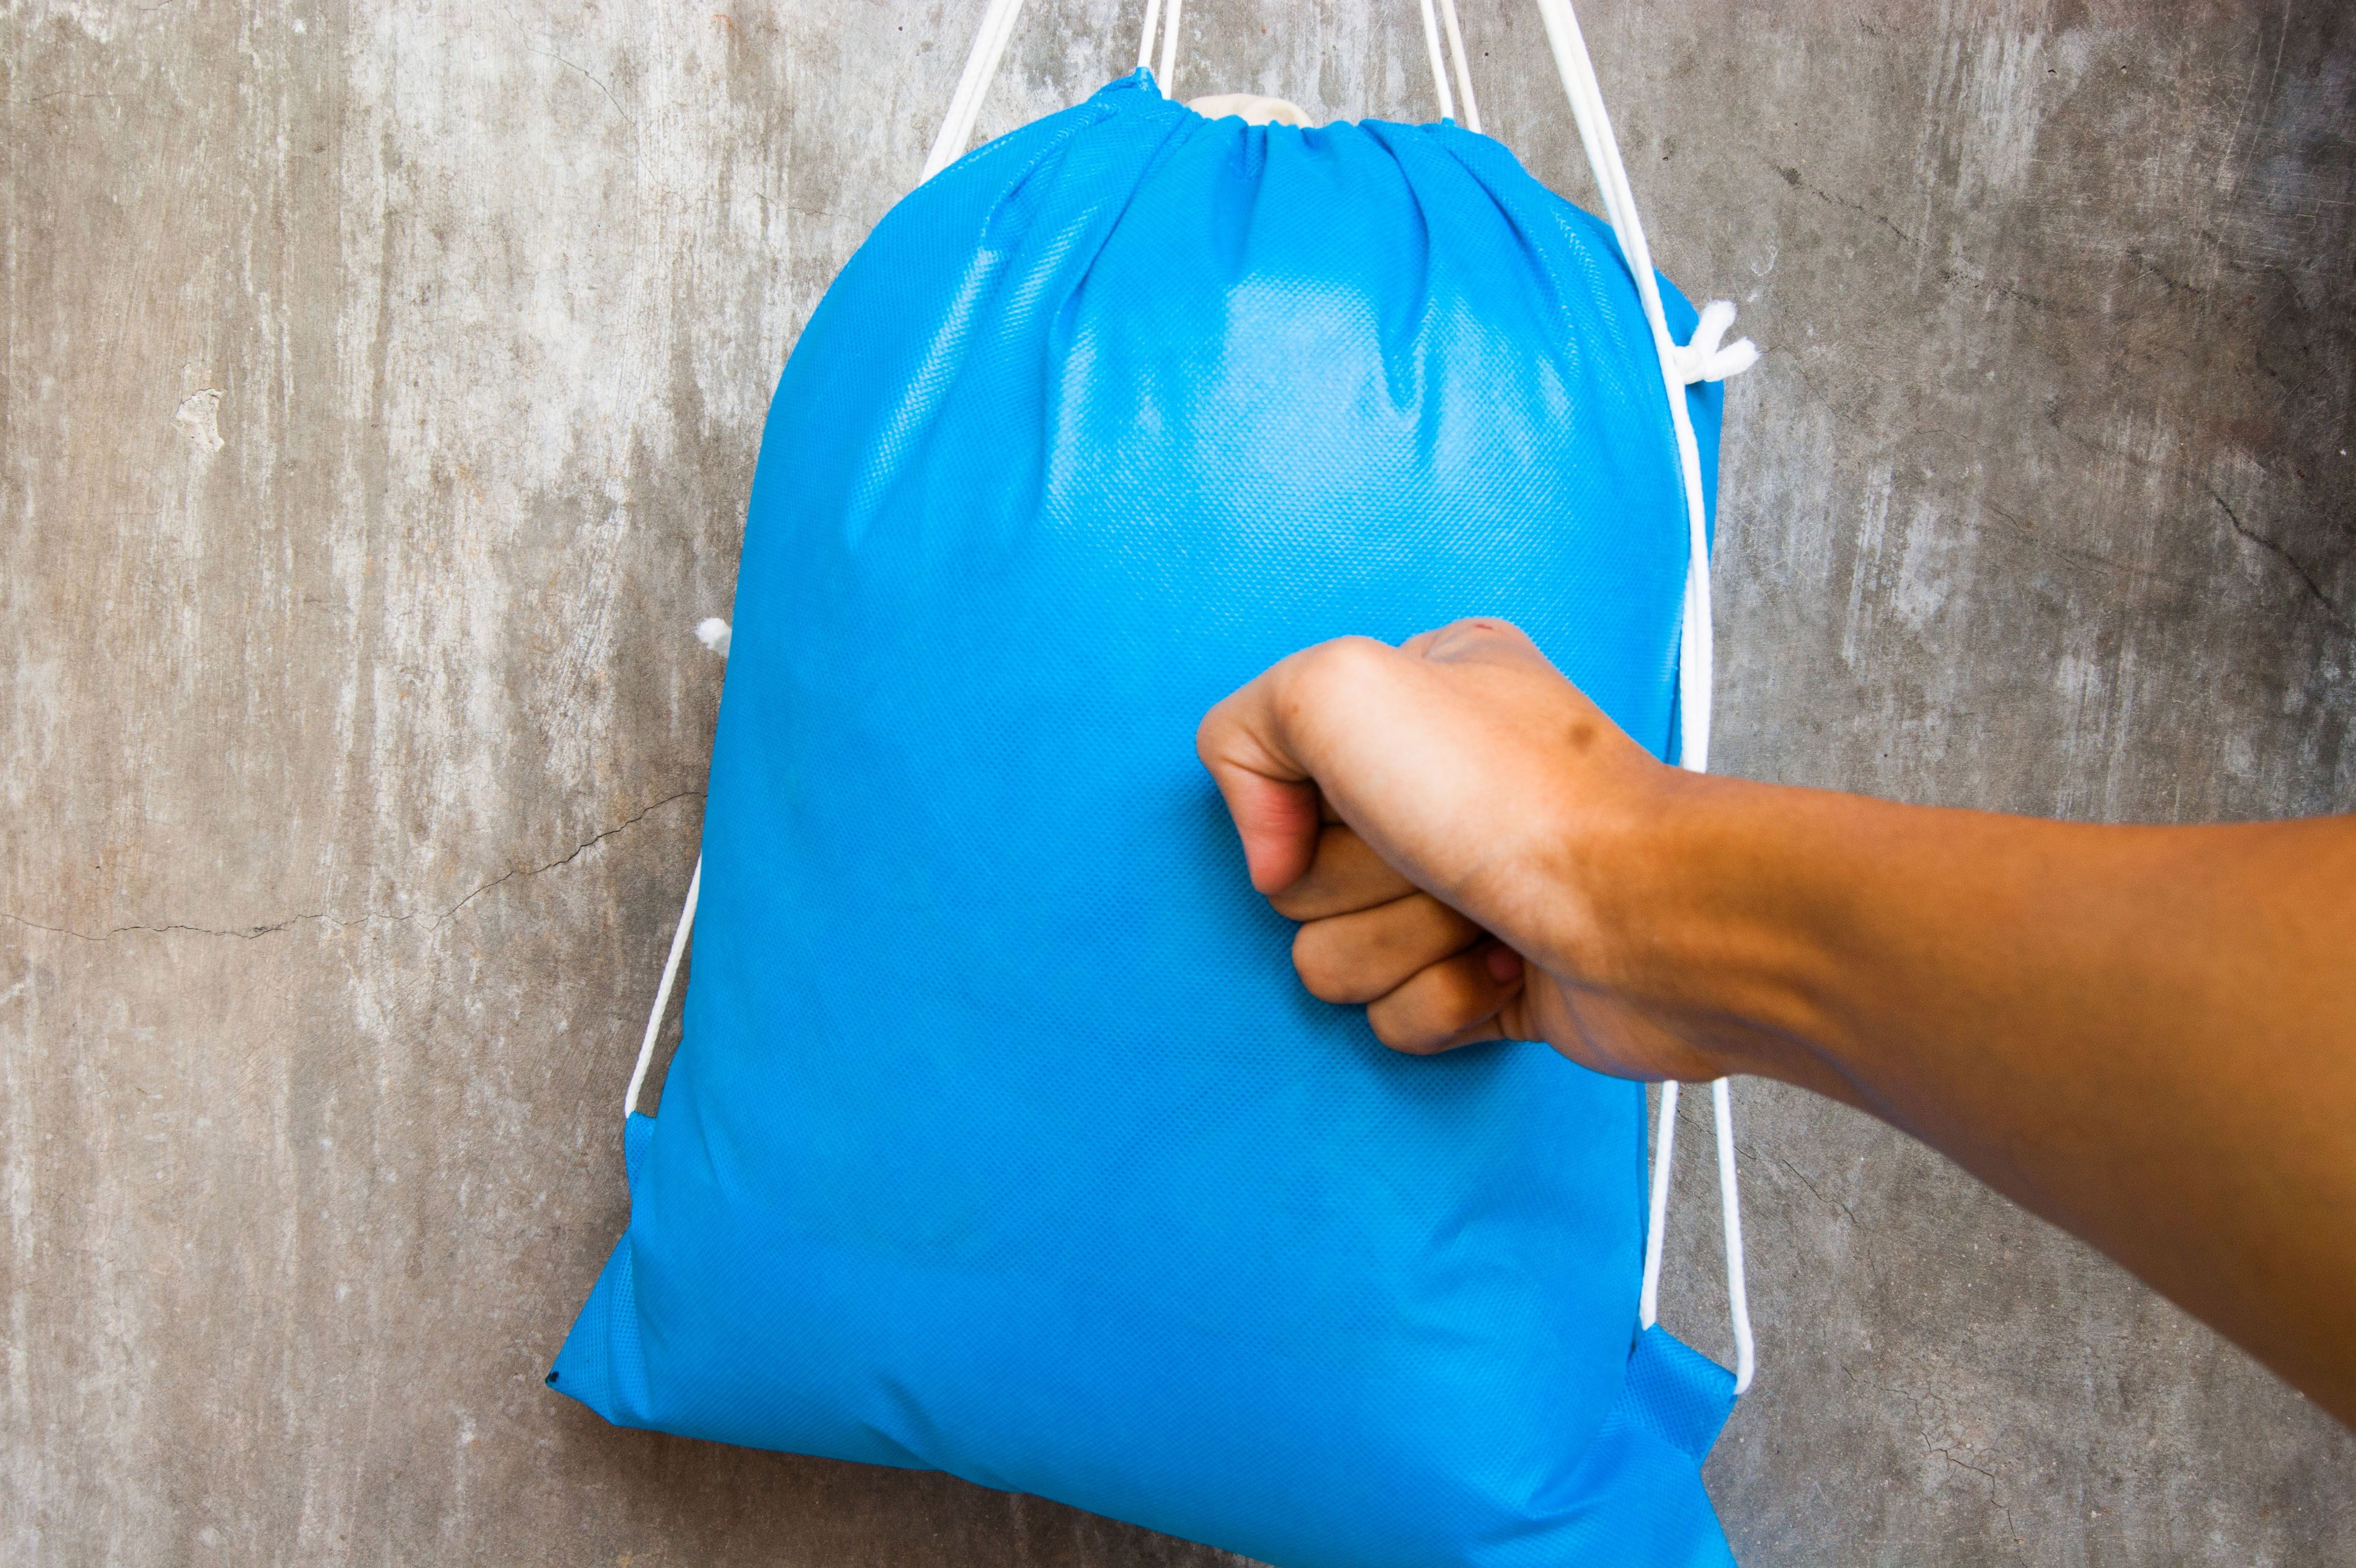 c3d0827d5023 How to Make a Punching Bag for Free -- via wikiHow.com